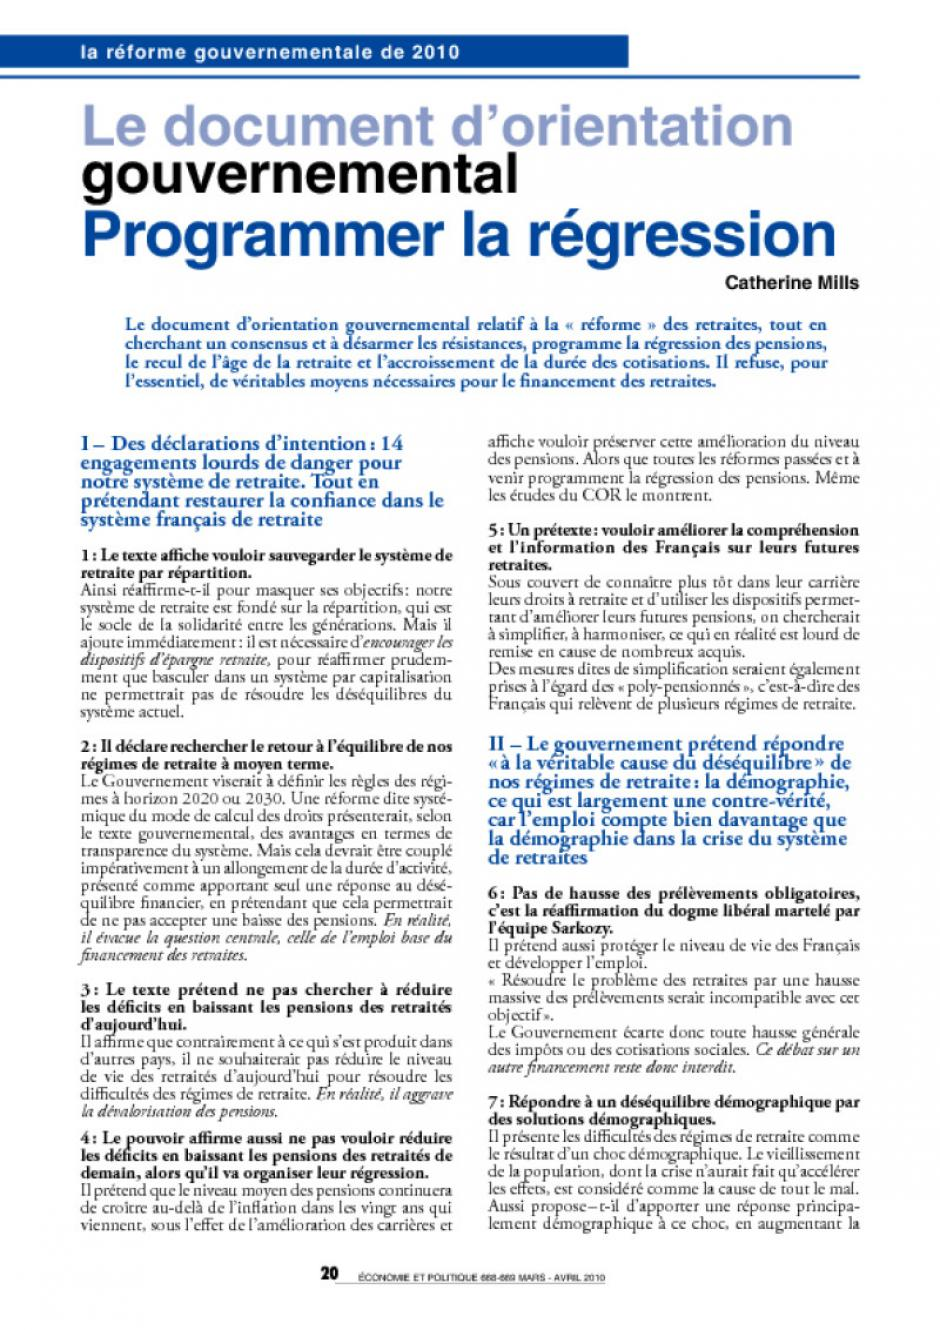 Le document d orientation gouvernemental sur les retraites  Programmer la  régression 94613cec1f5a